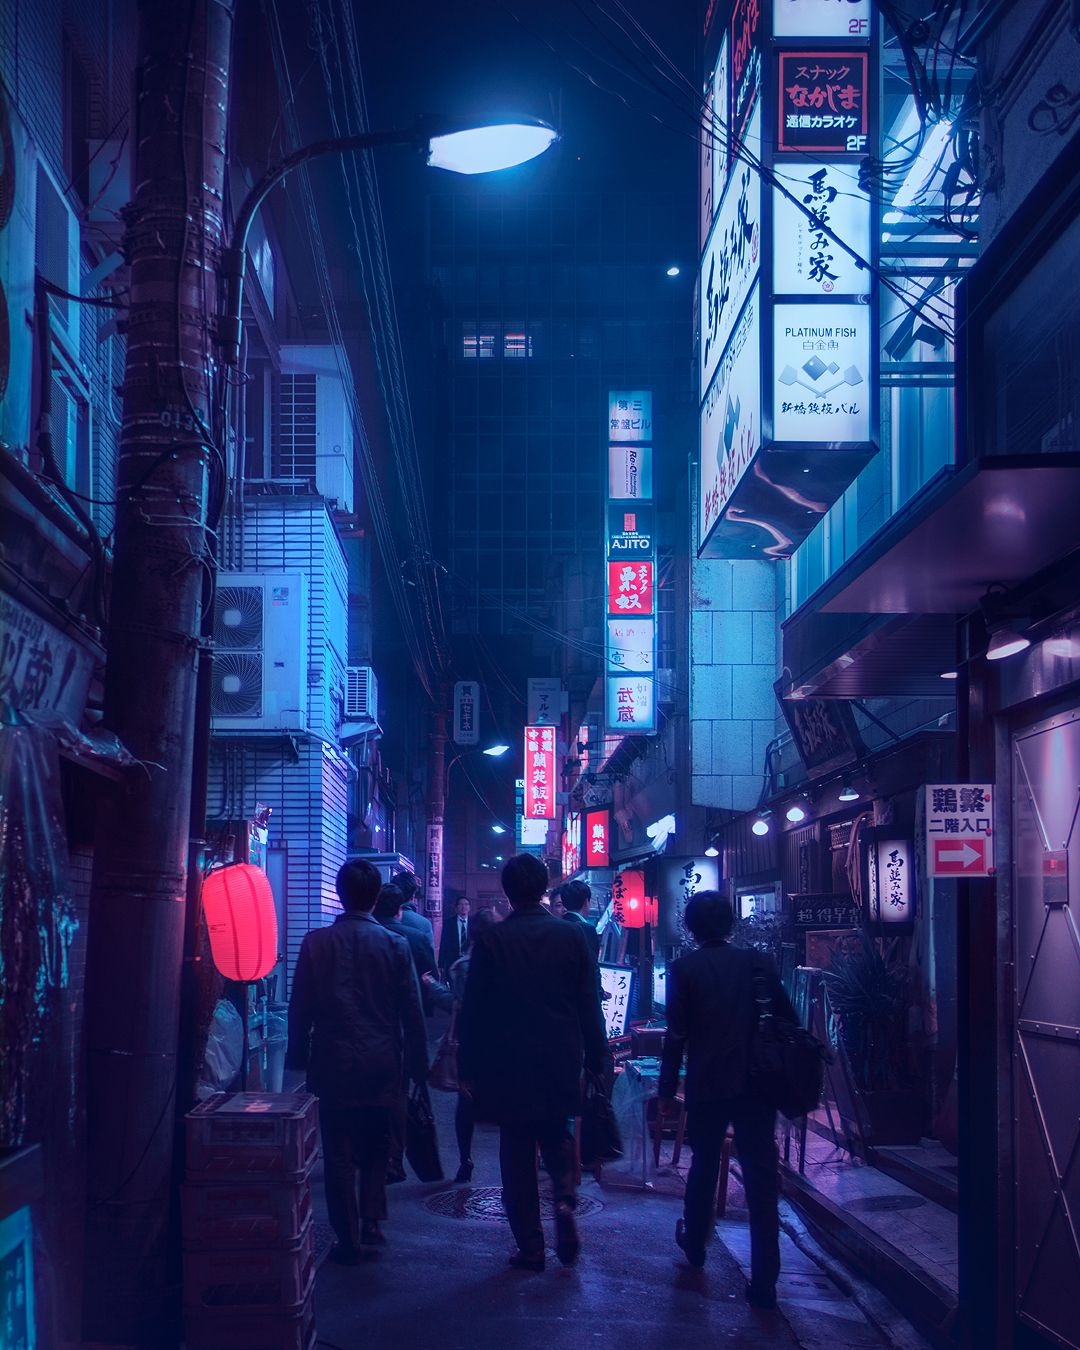 Sleepless City Streets Of Rainy Tokyo Nights Lit By Electric Neon